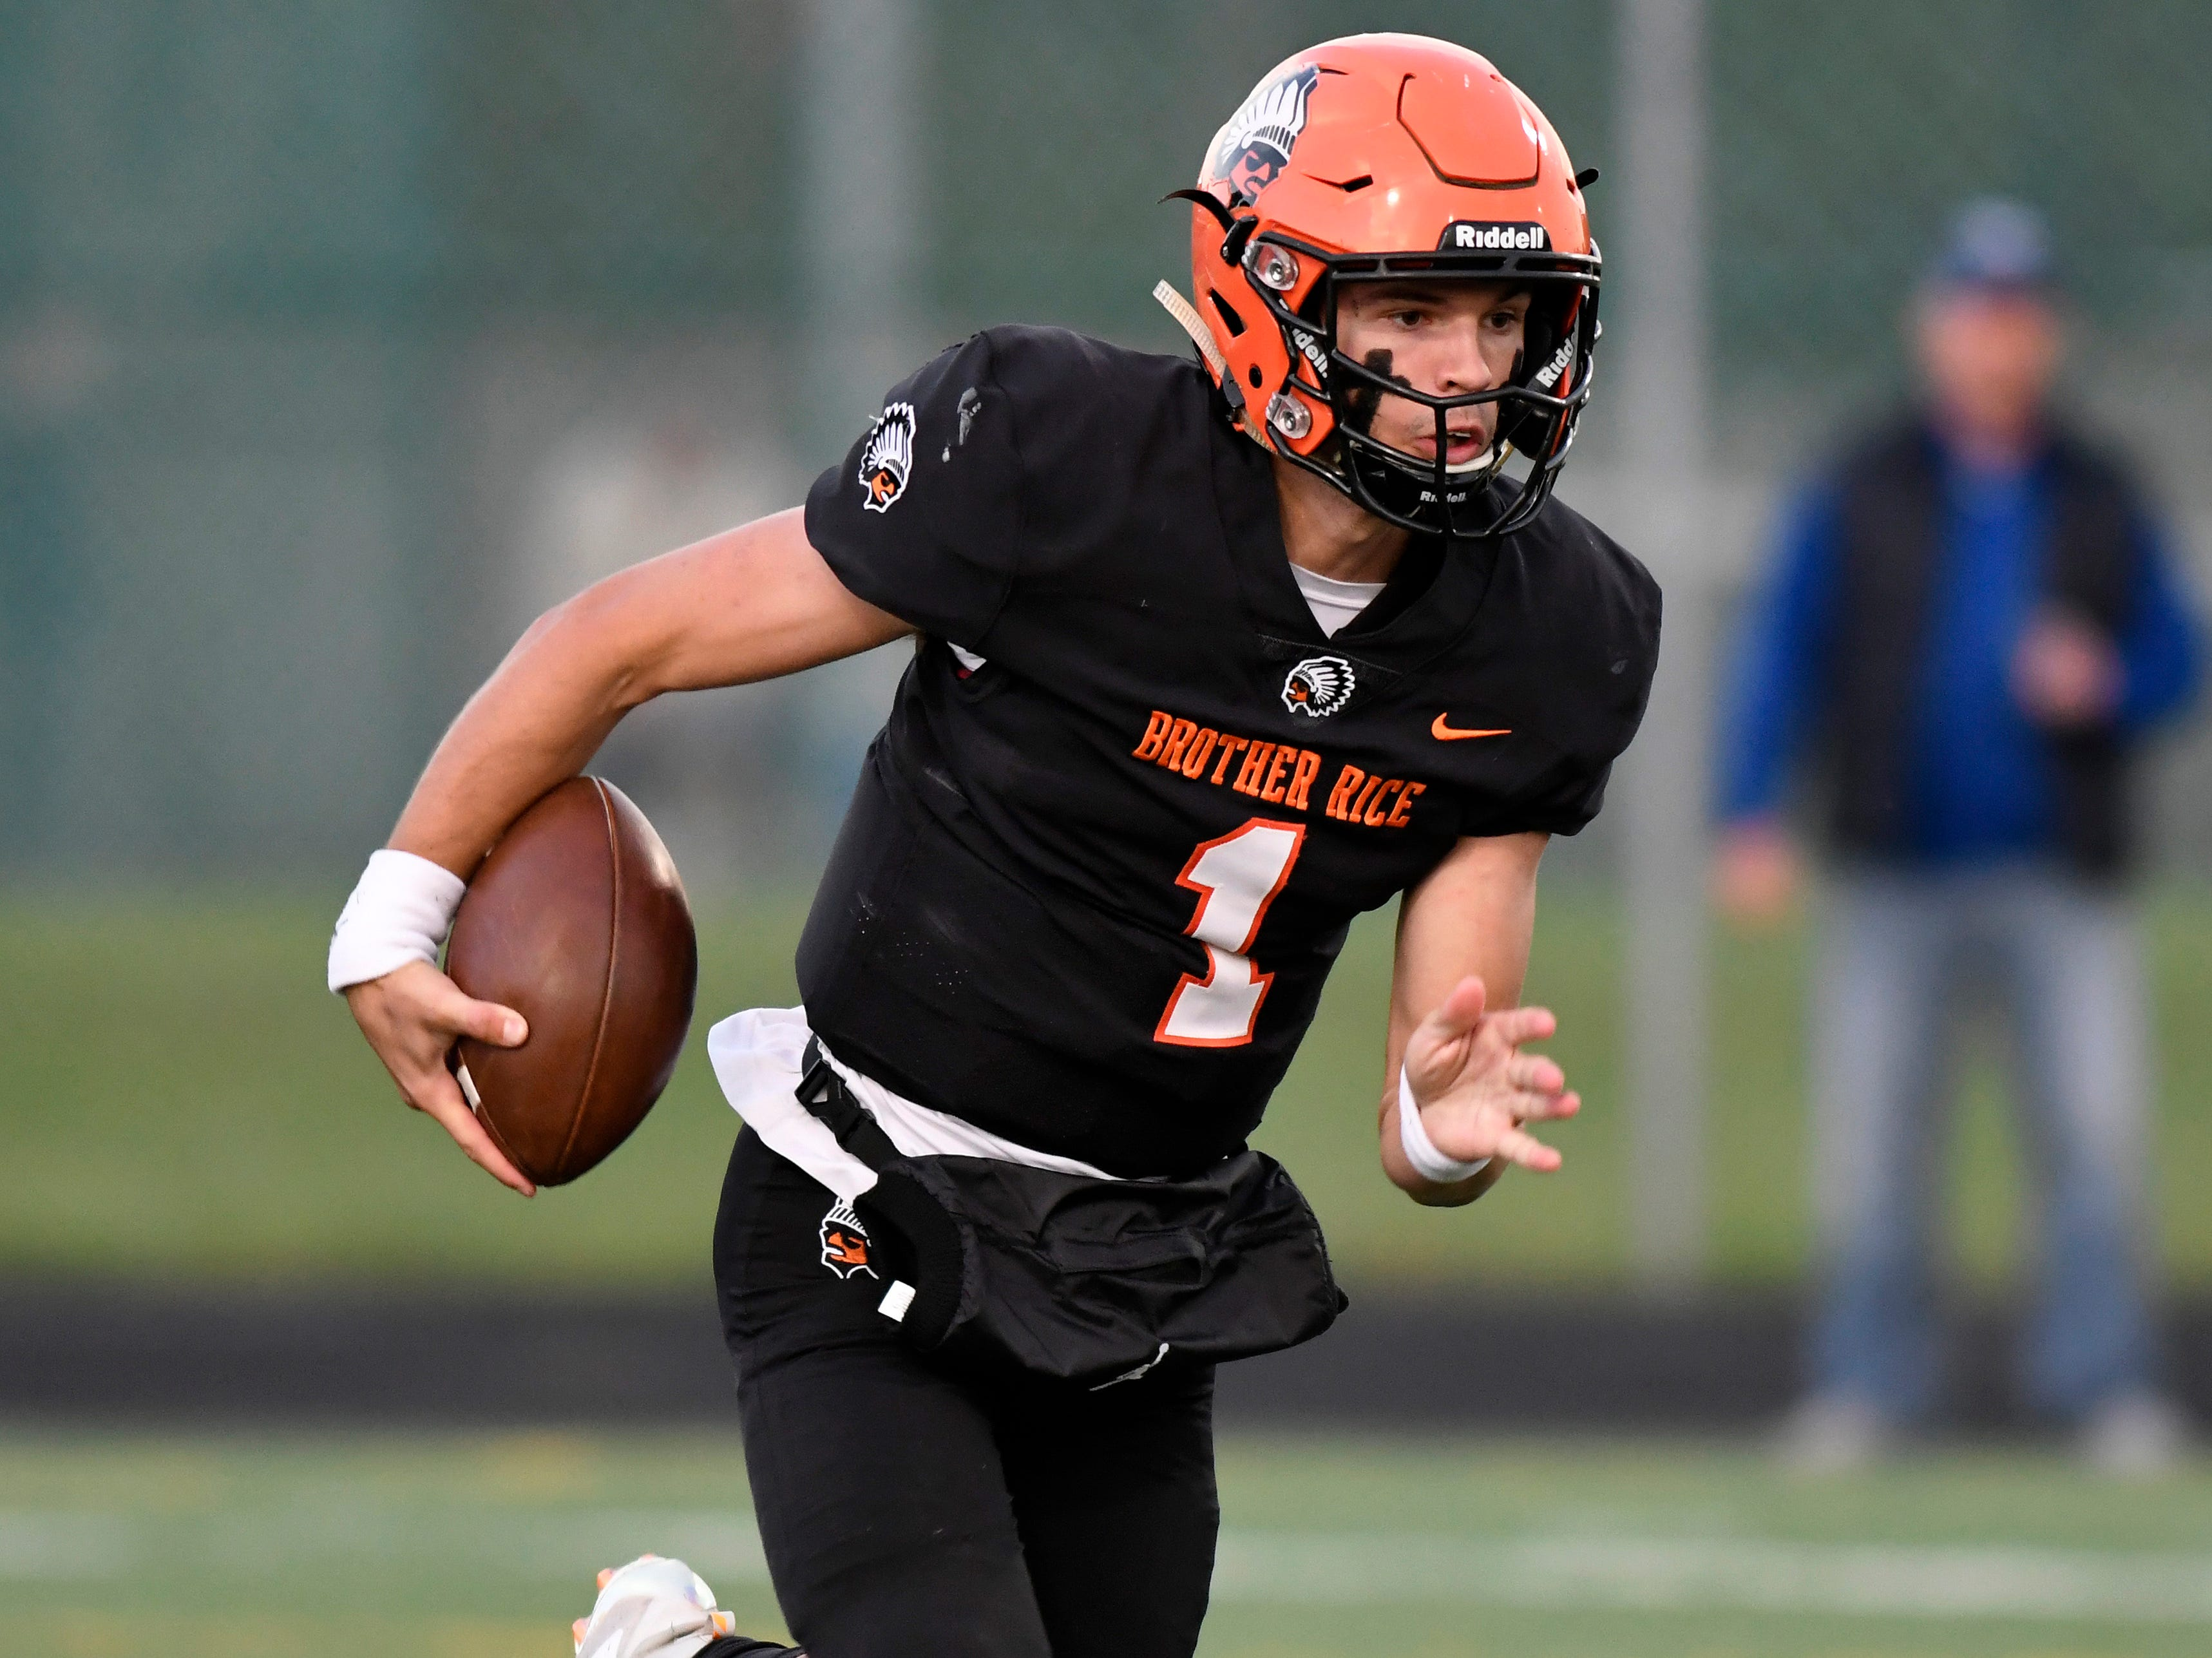 IBirmingham Brother Rice quarterback Greg Piscopink (1) scrambles for yardage against Detroit Catholic Central n the first quarter, Saturday, Sept. 22, 2018 at Hurley Field in Berkley, Mich.  Catholic Central defeated Brother Rice, 21-0.  (Jose Juarez/Hometown Life)